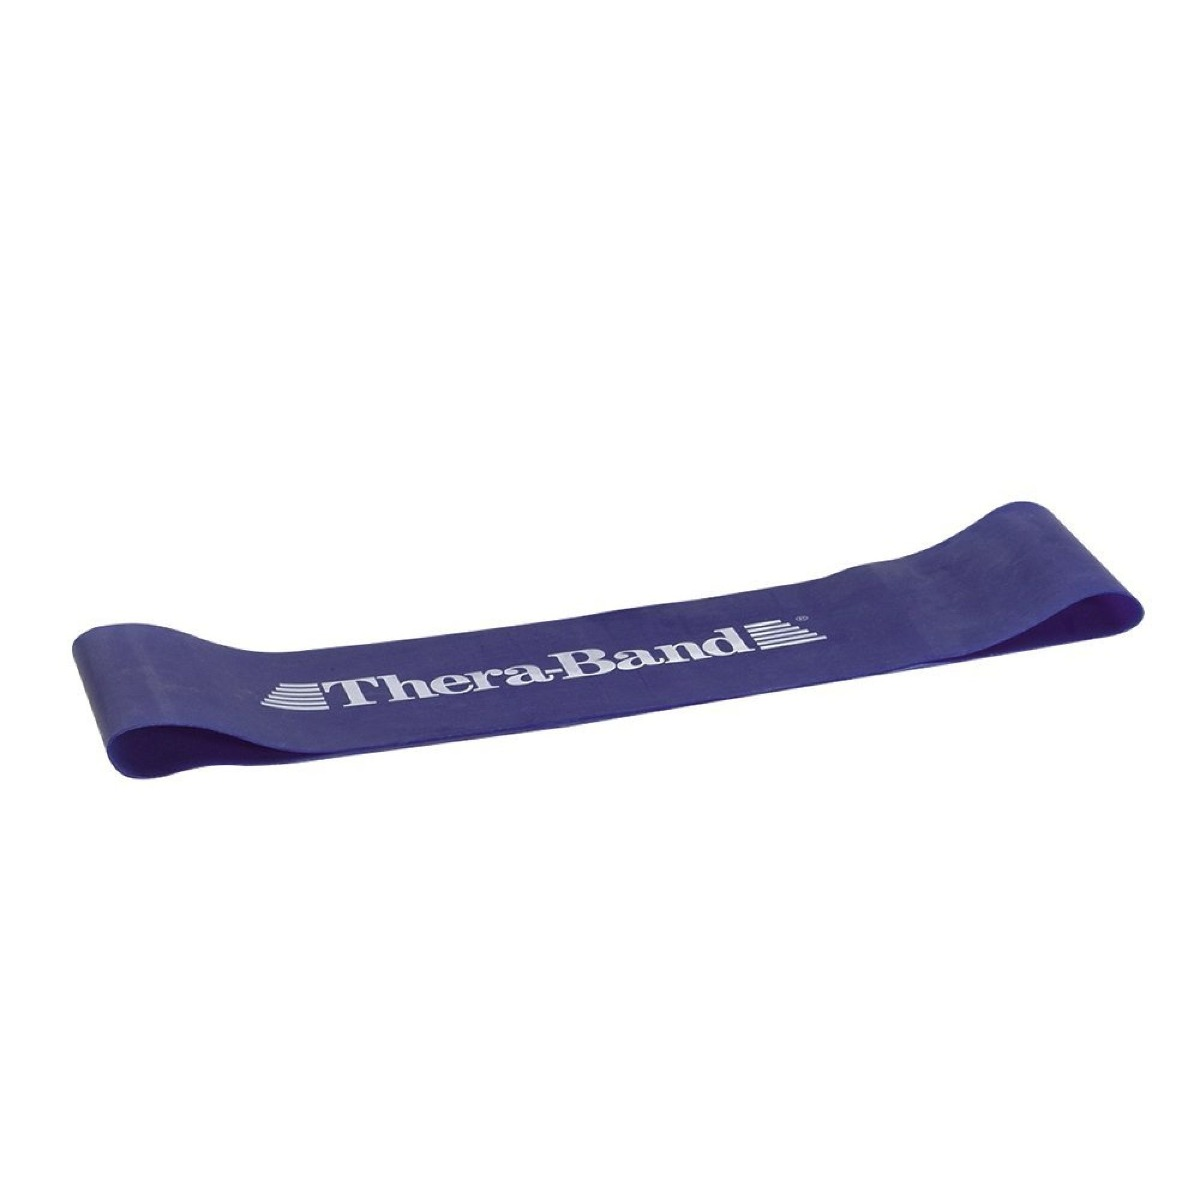 "TheraBand Loops, 8"" Flat, Level 4, Blue, Extra Heavy"